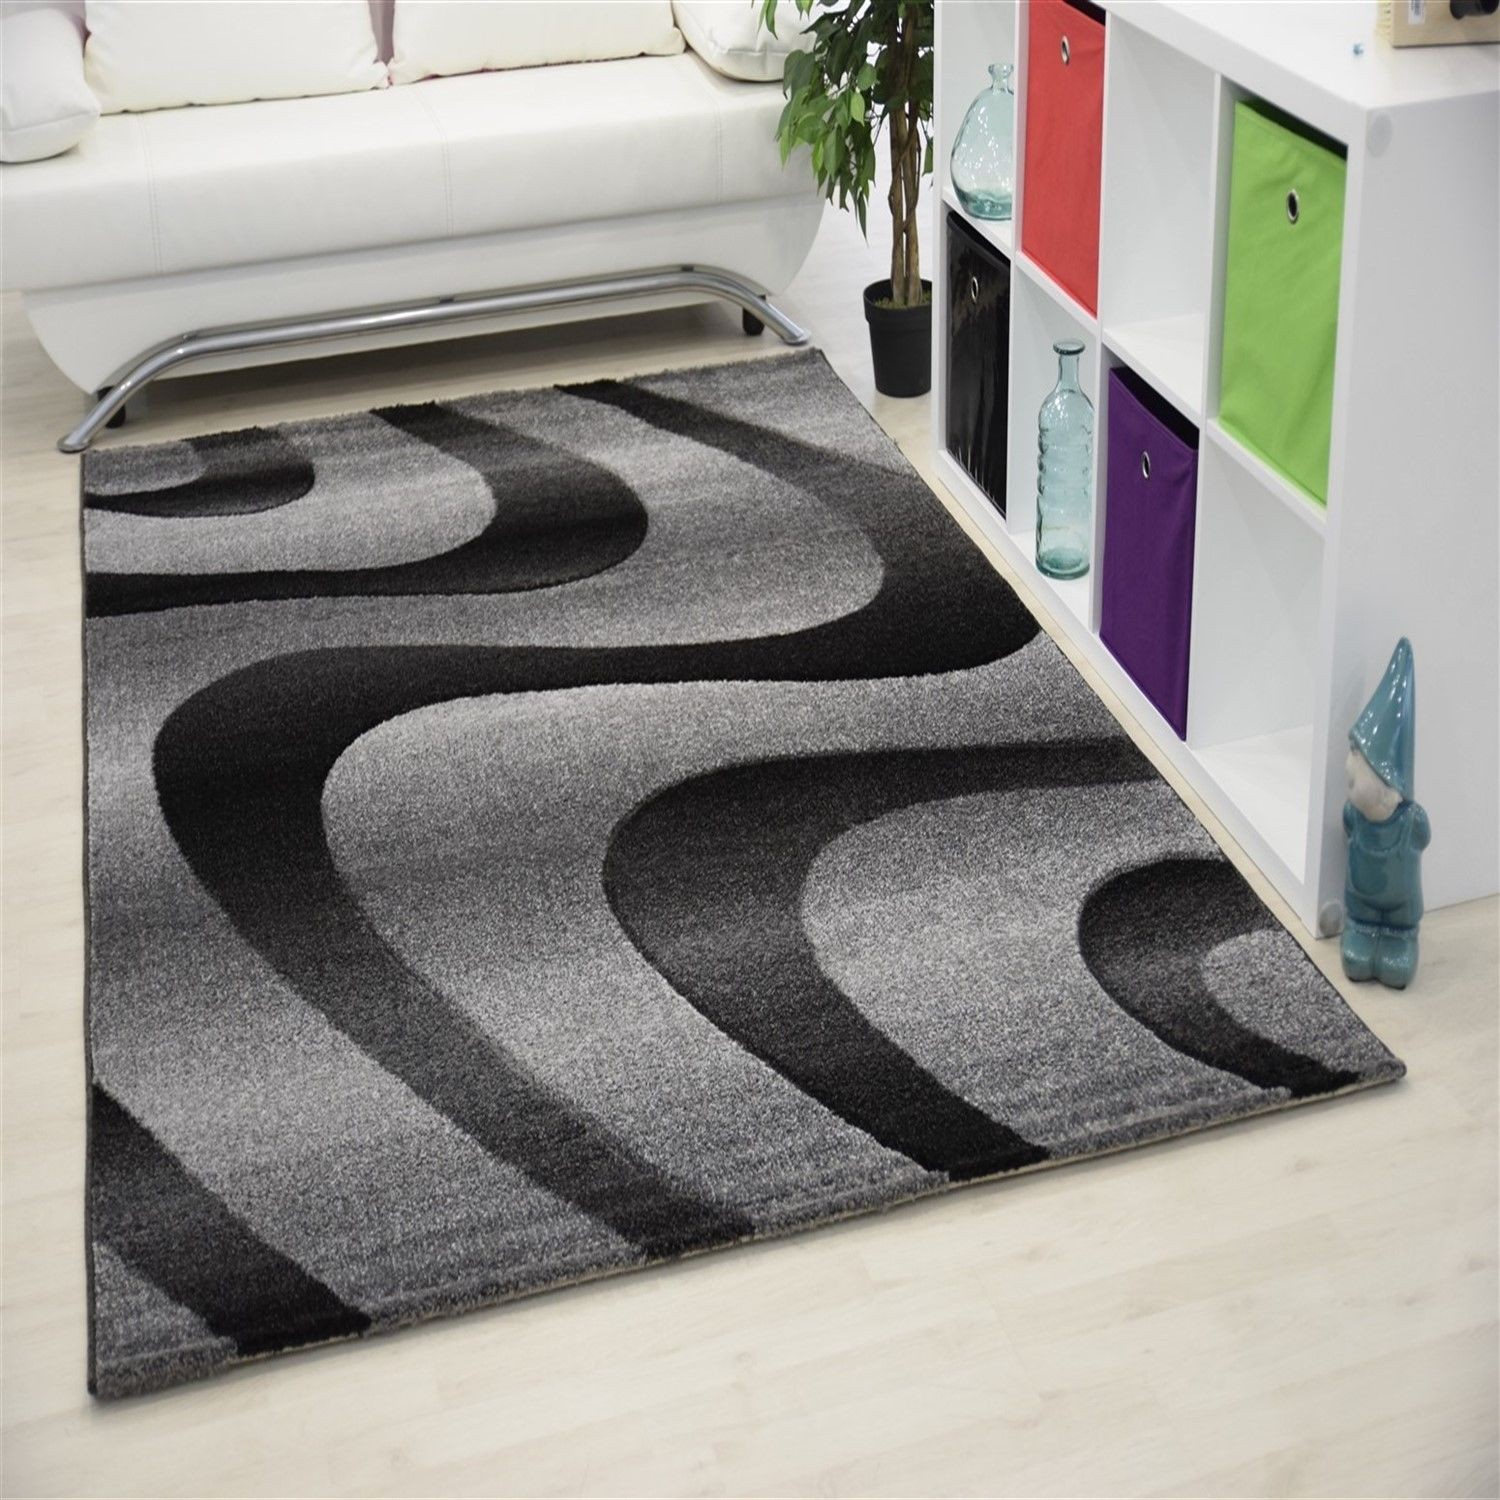 Tapis Salon Gris Et Rose